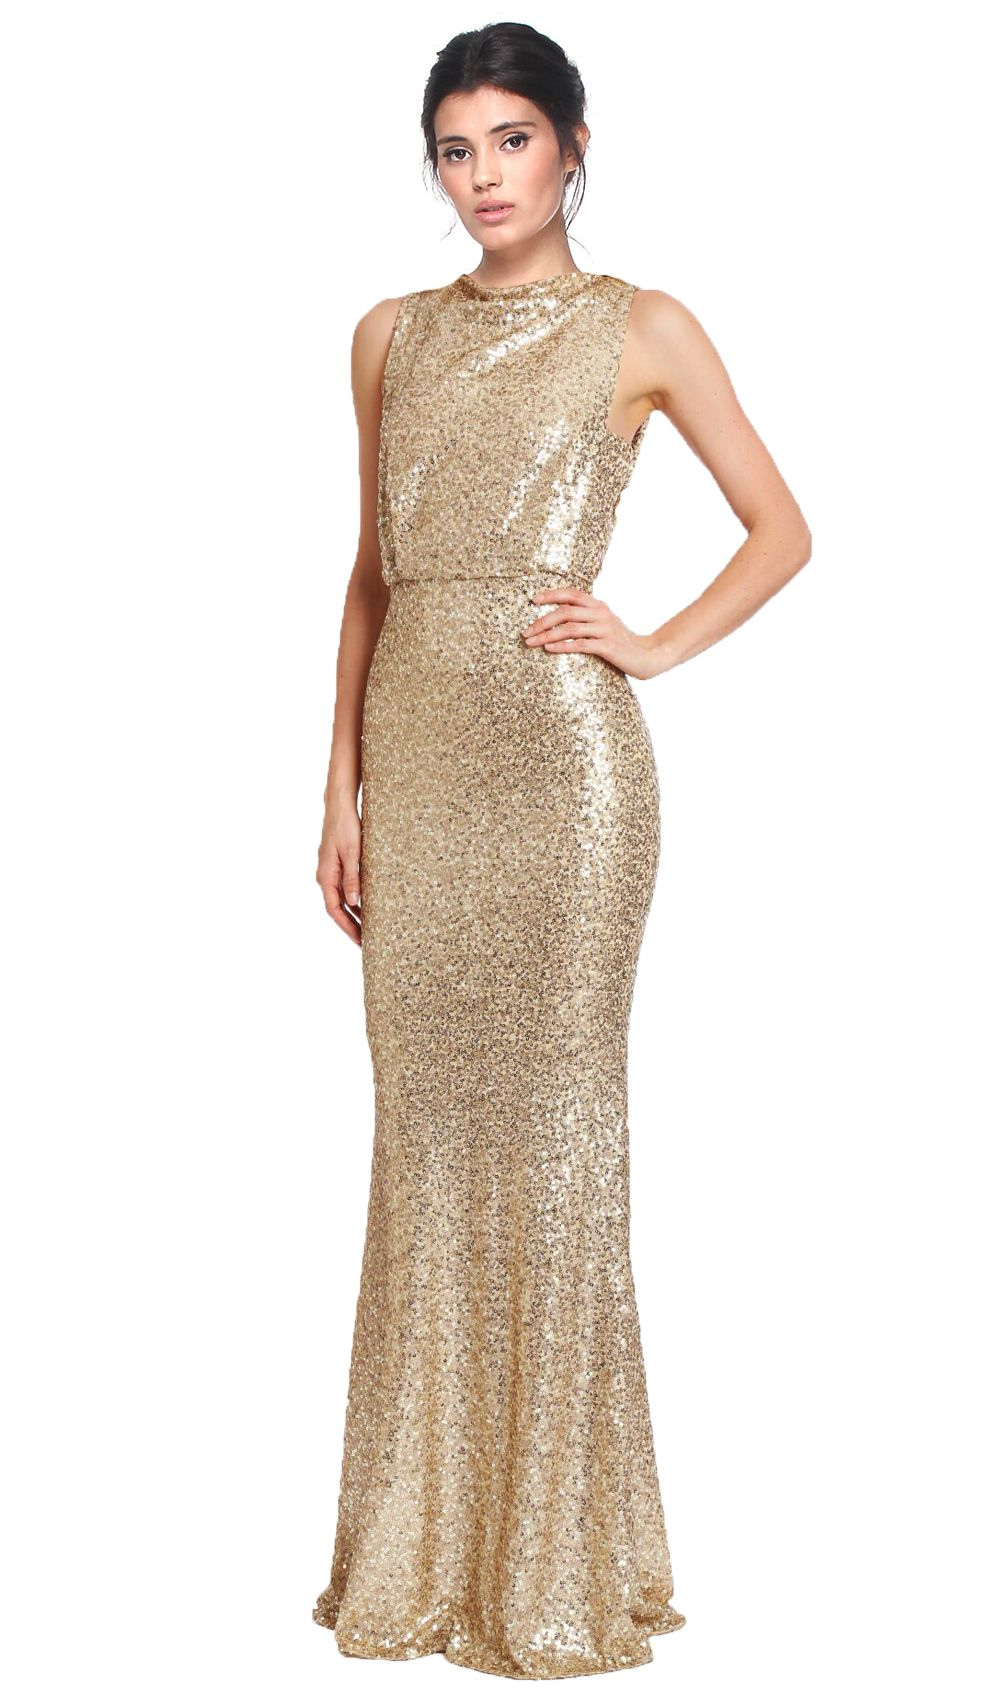 Hire this incredible golden all over sequin gown with open back detail. The bateau neckline with a drawn in waist and dazzling gold sequins makes for the most eye popping gown this season. Be bold and hire evening gowns from Badgley Mischka that set you apart from the crowd, or rent designer dresses that ensure you create a spectacular scene this party season. The train that falls so elegantly with your every step will ensure you glide so effortlessly into any special event. Sequin gowns and…